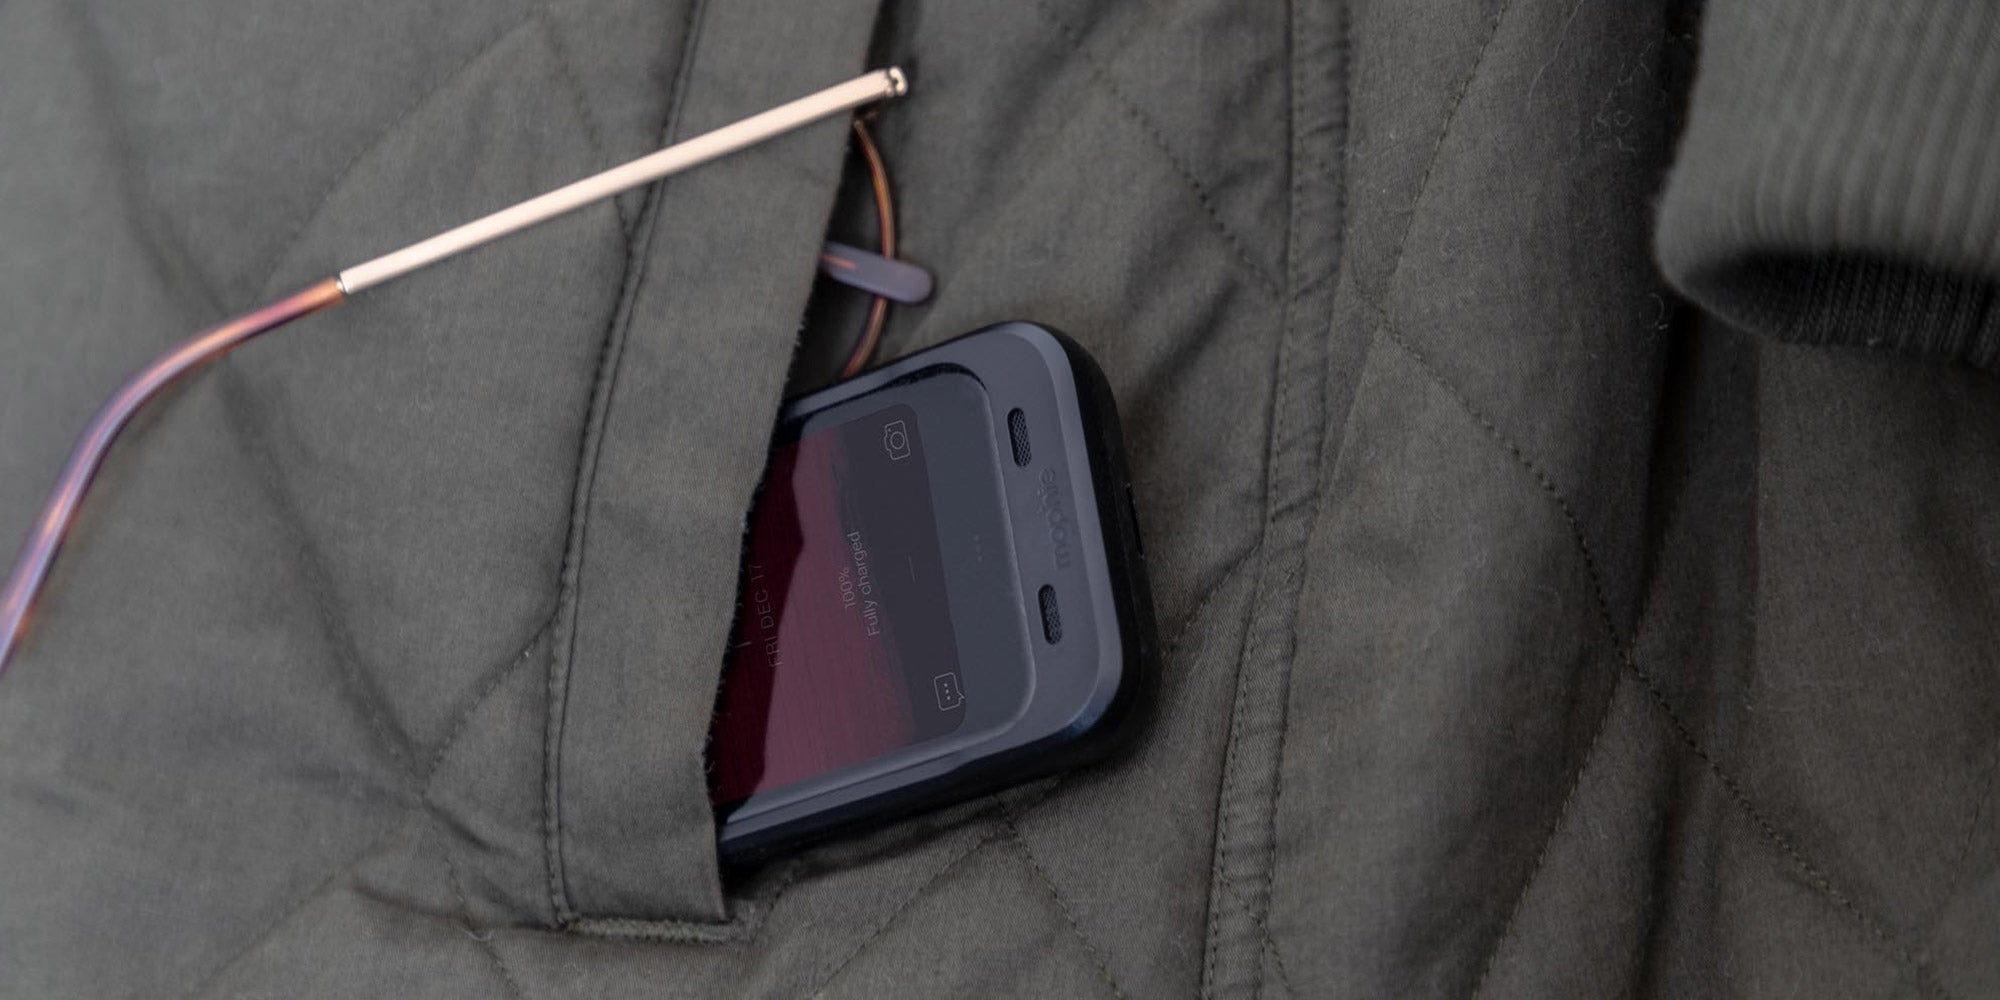 A Palm phone with a mophie juice pack peeking out of a coat pocket